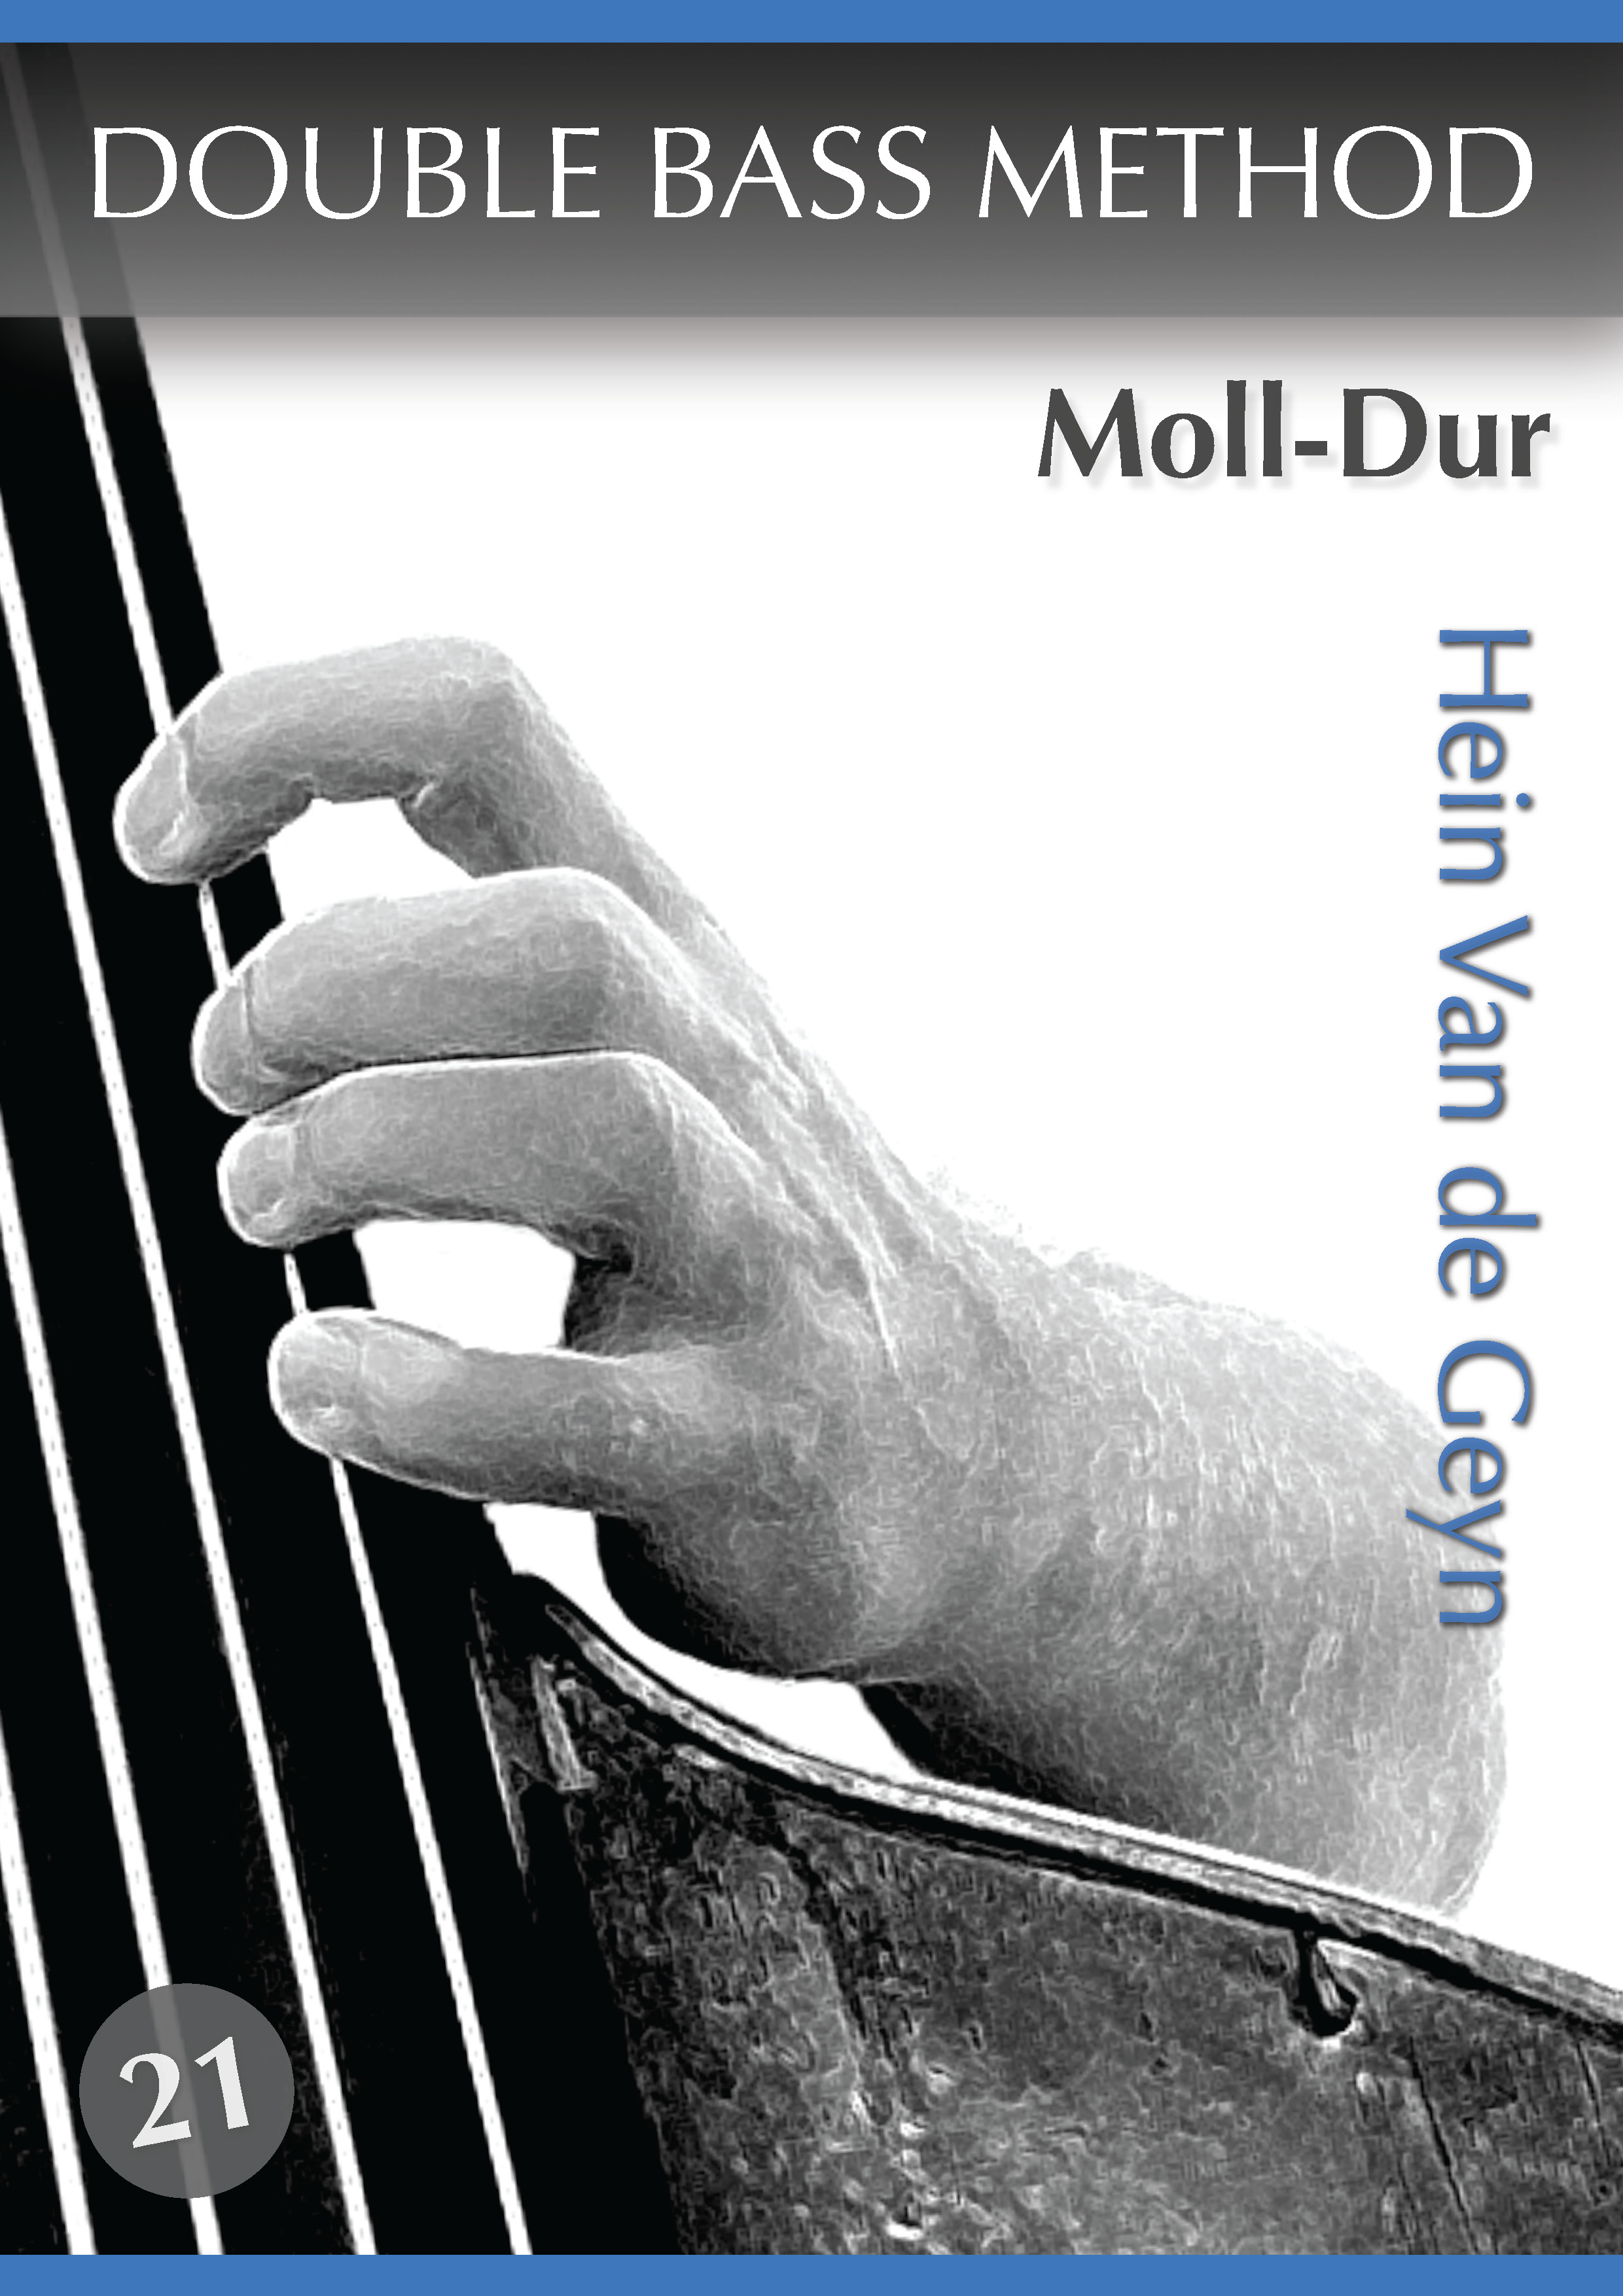 Moll-Dur - Hein Van de Geyn - Double Bass Method